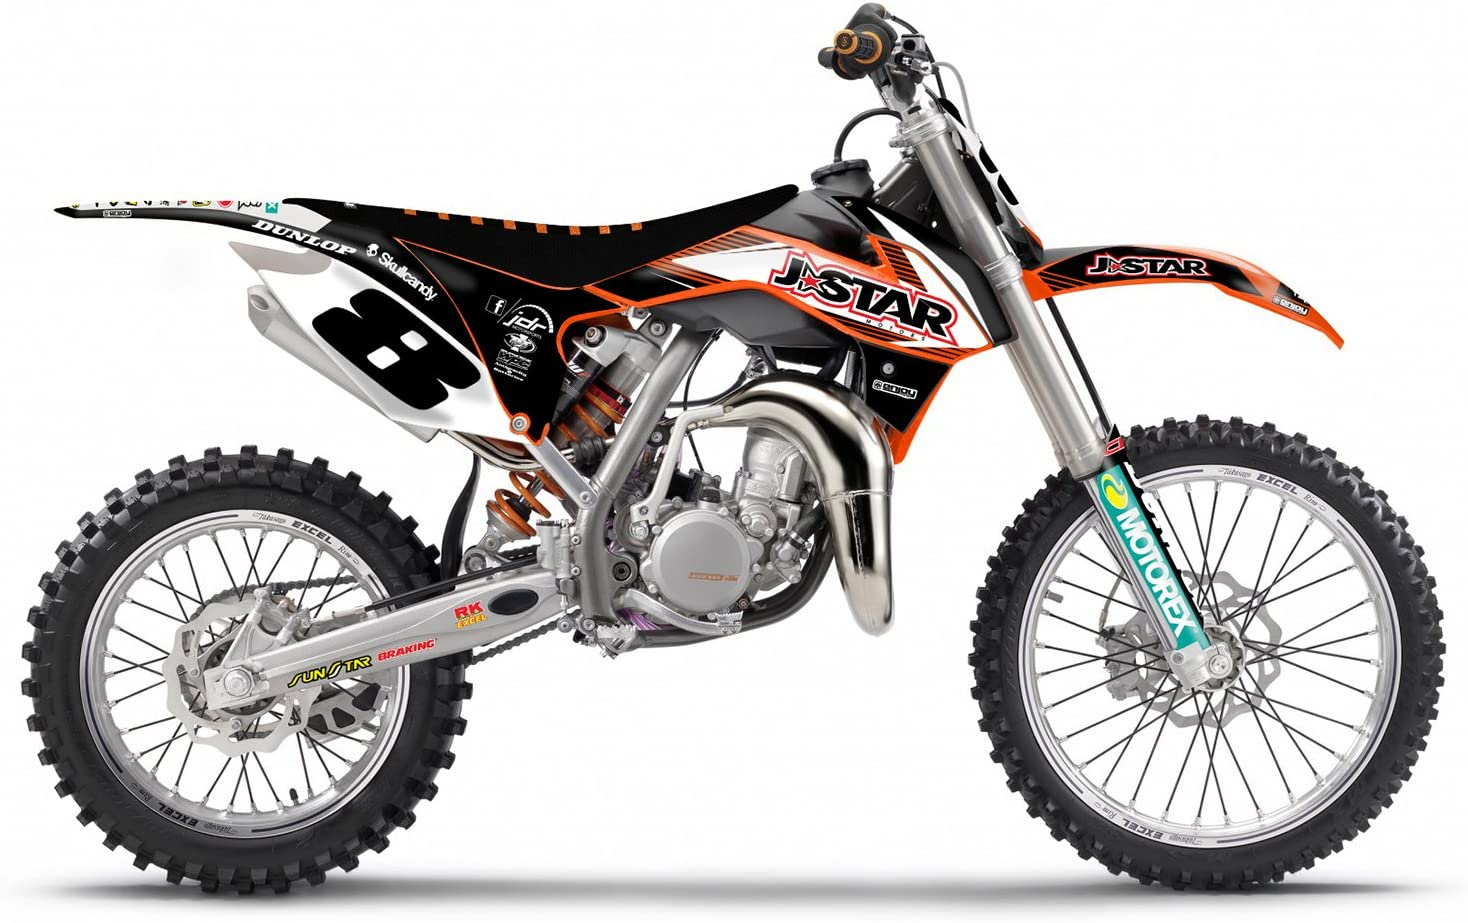 2013-2017 KTM SX 85 Team Issue LO Motocross Graphics Dirt Bike Graphic Decal